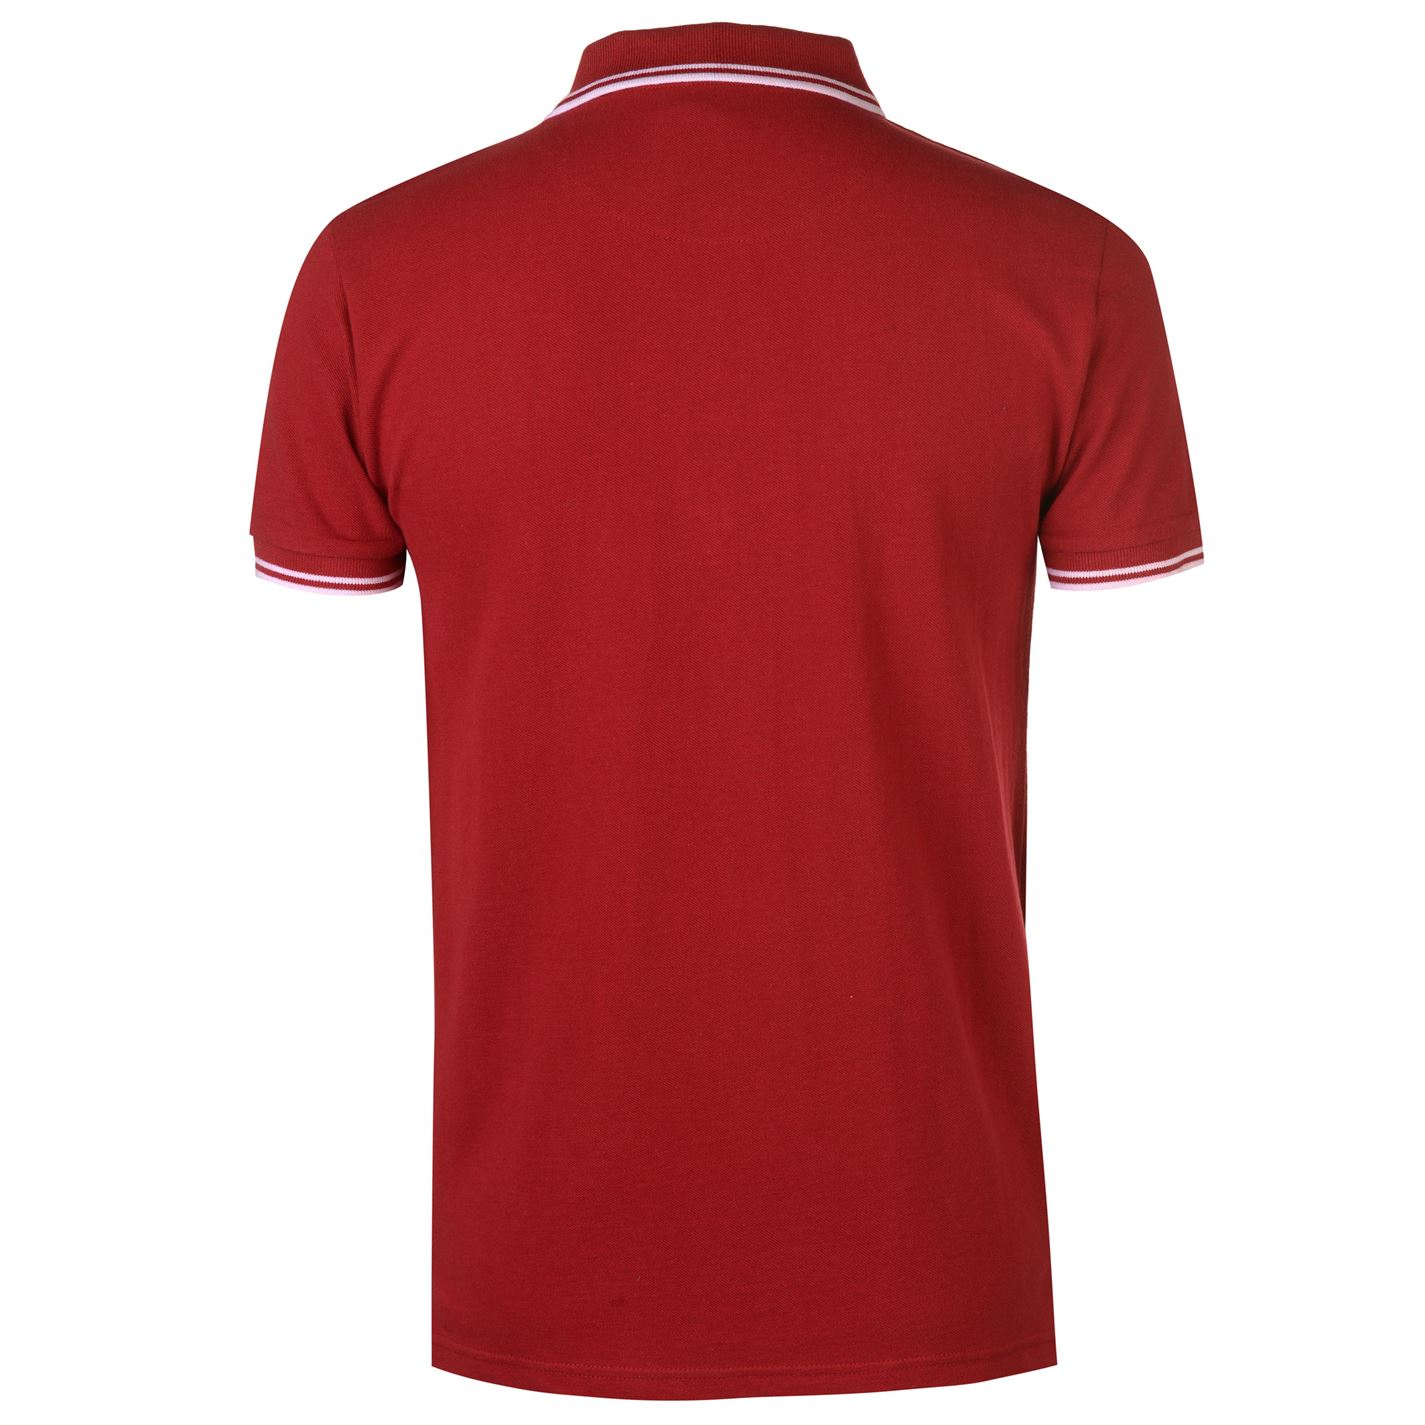 VOI-Mens-Side-Logo-Polo-Shirt-Slim-Fit-Tee-Top-Short-Sleeve-Lightweight-Cotton thumbnail 7